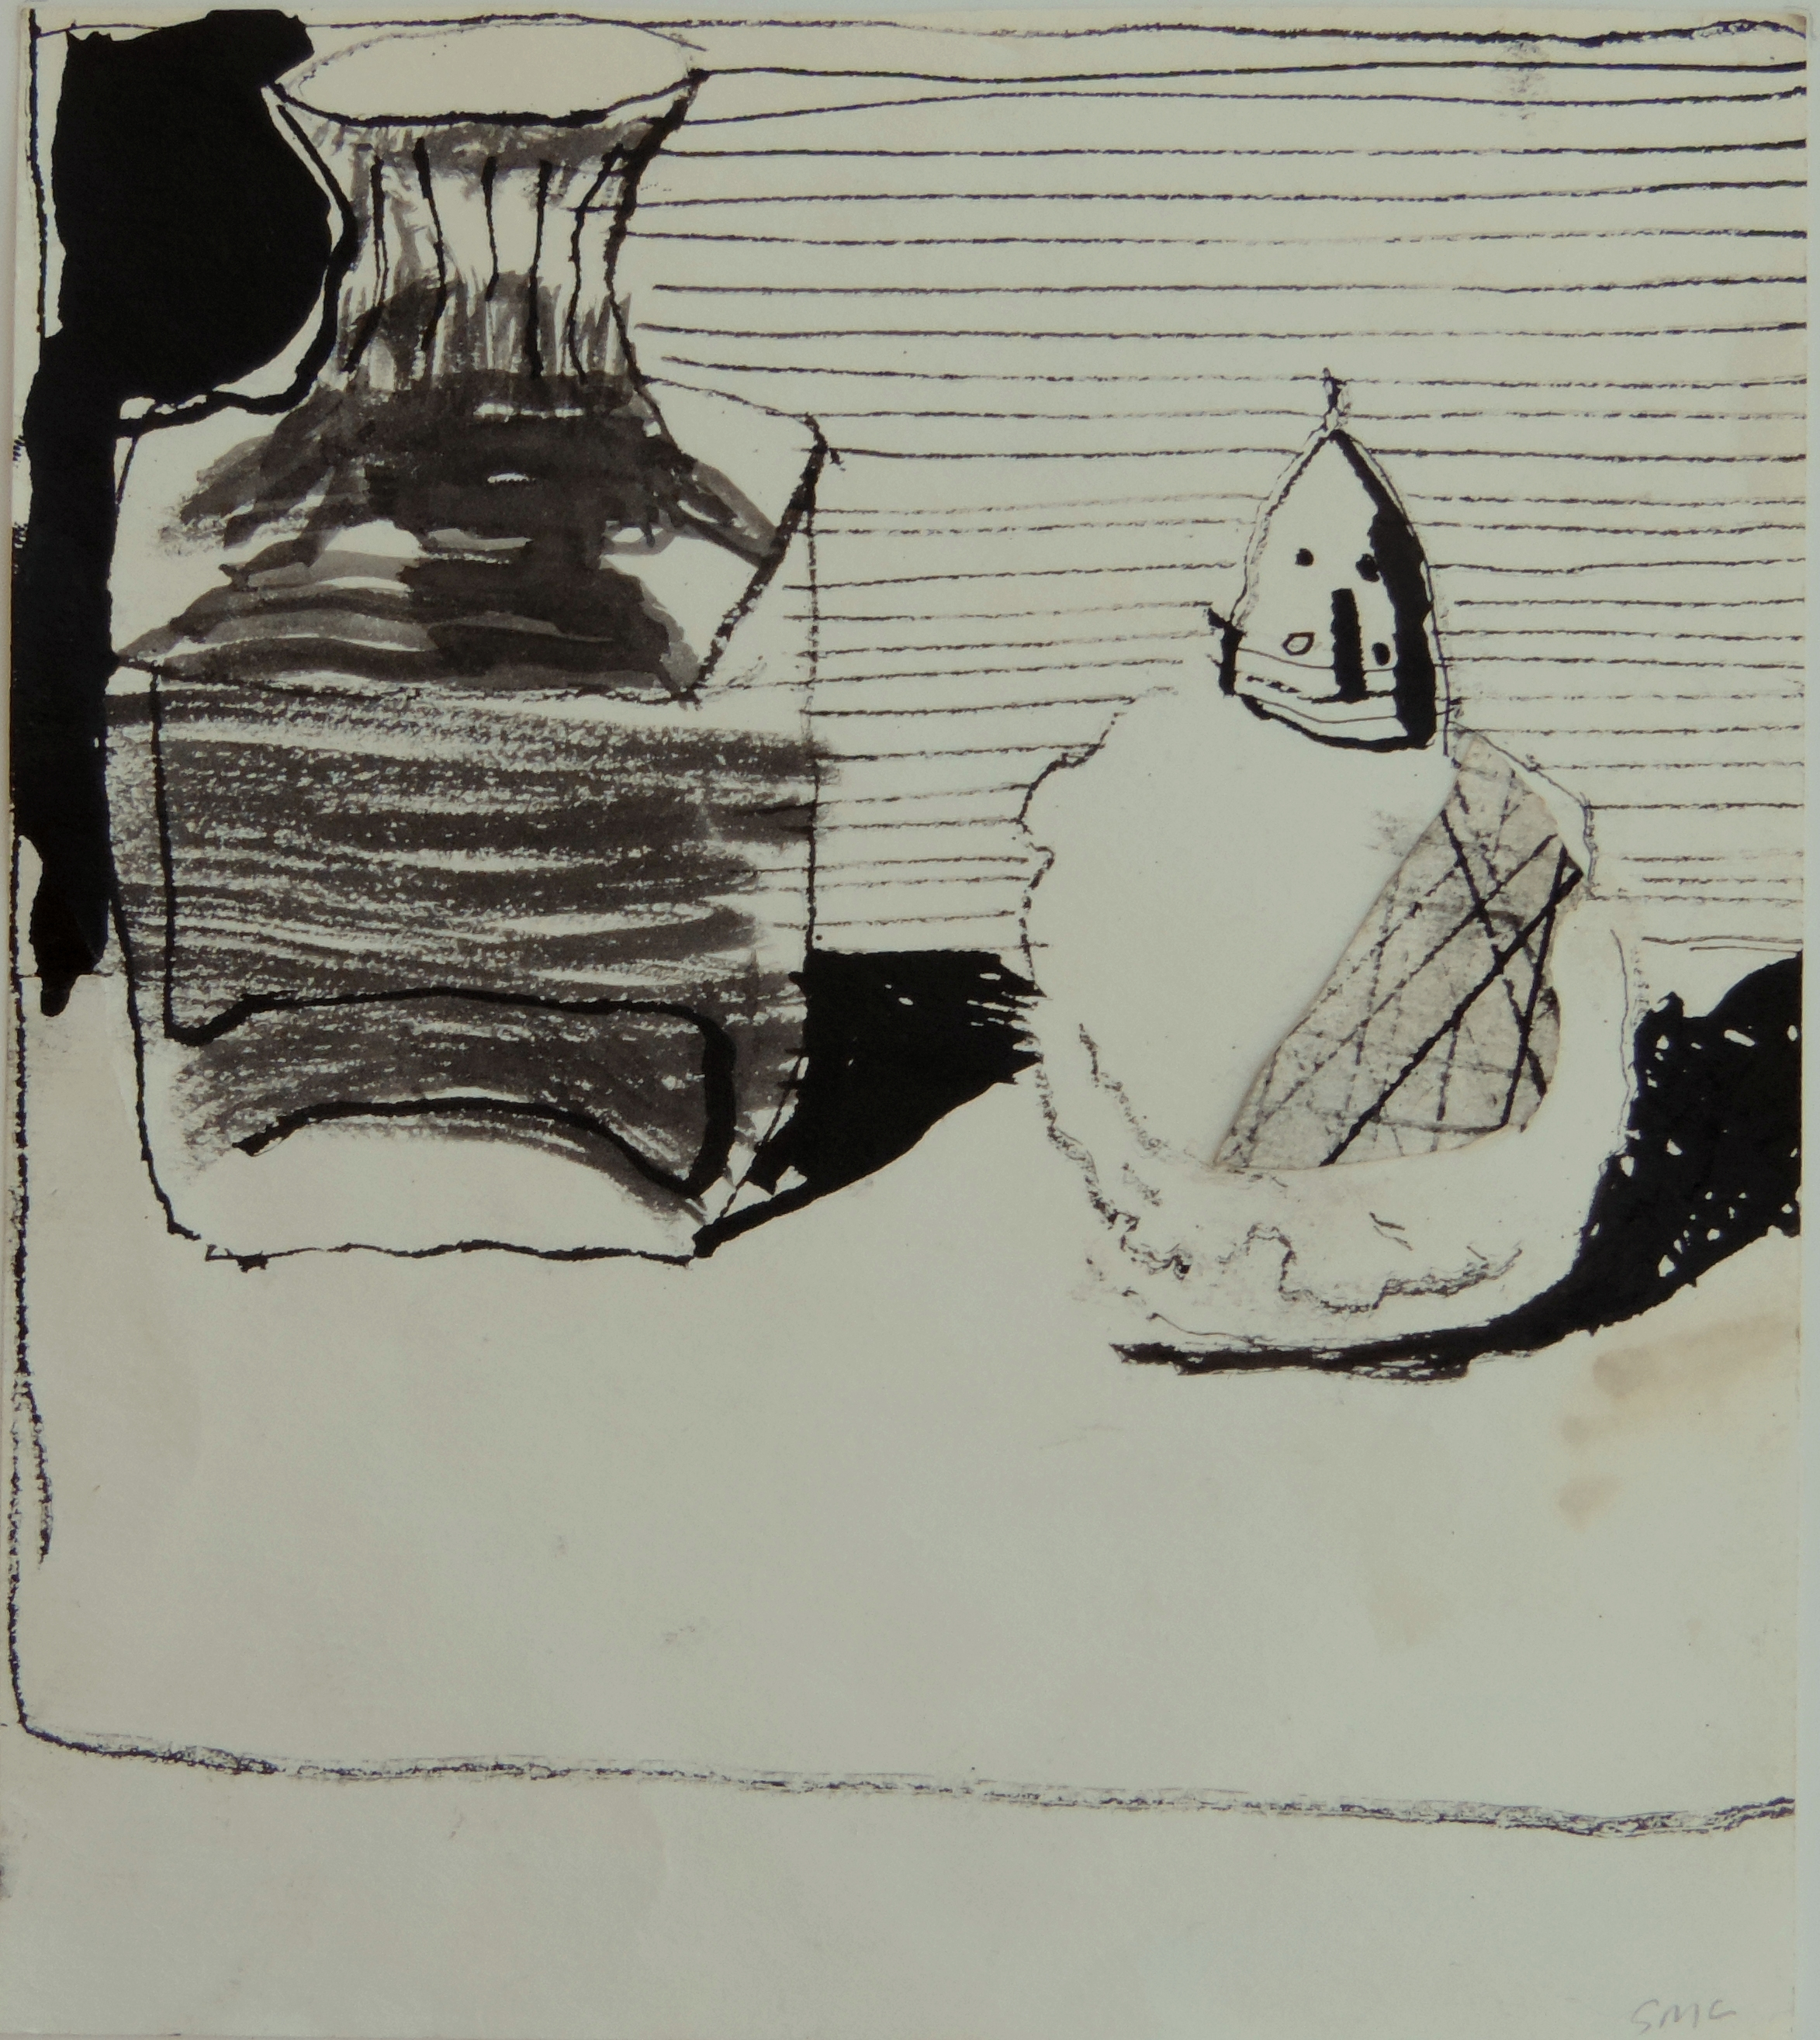 Vase and Salt drawing